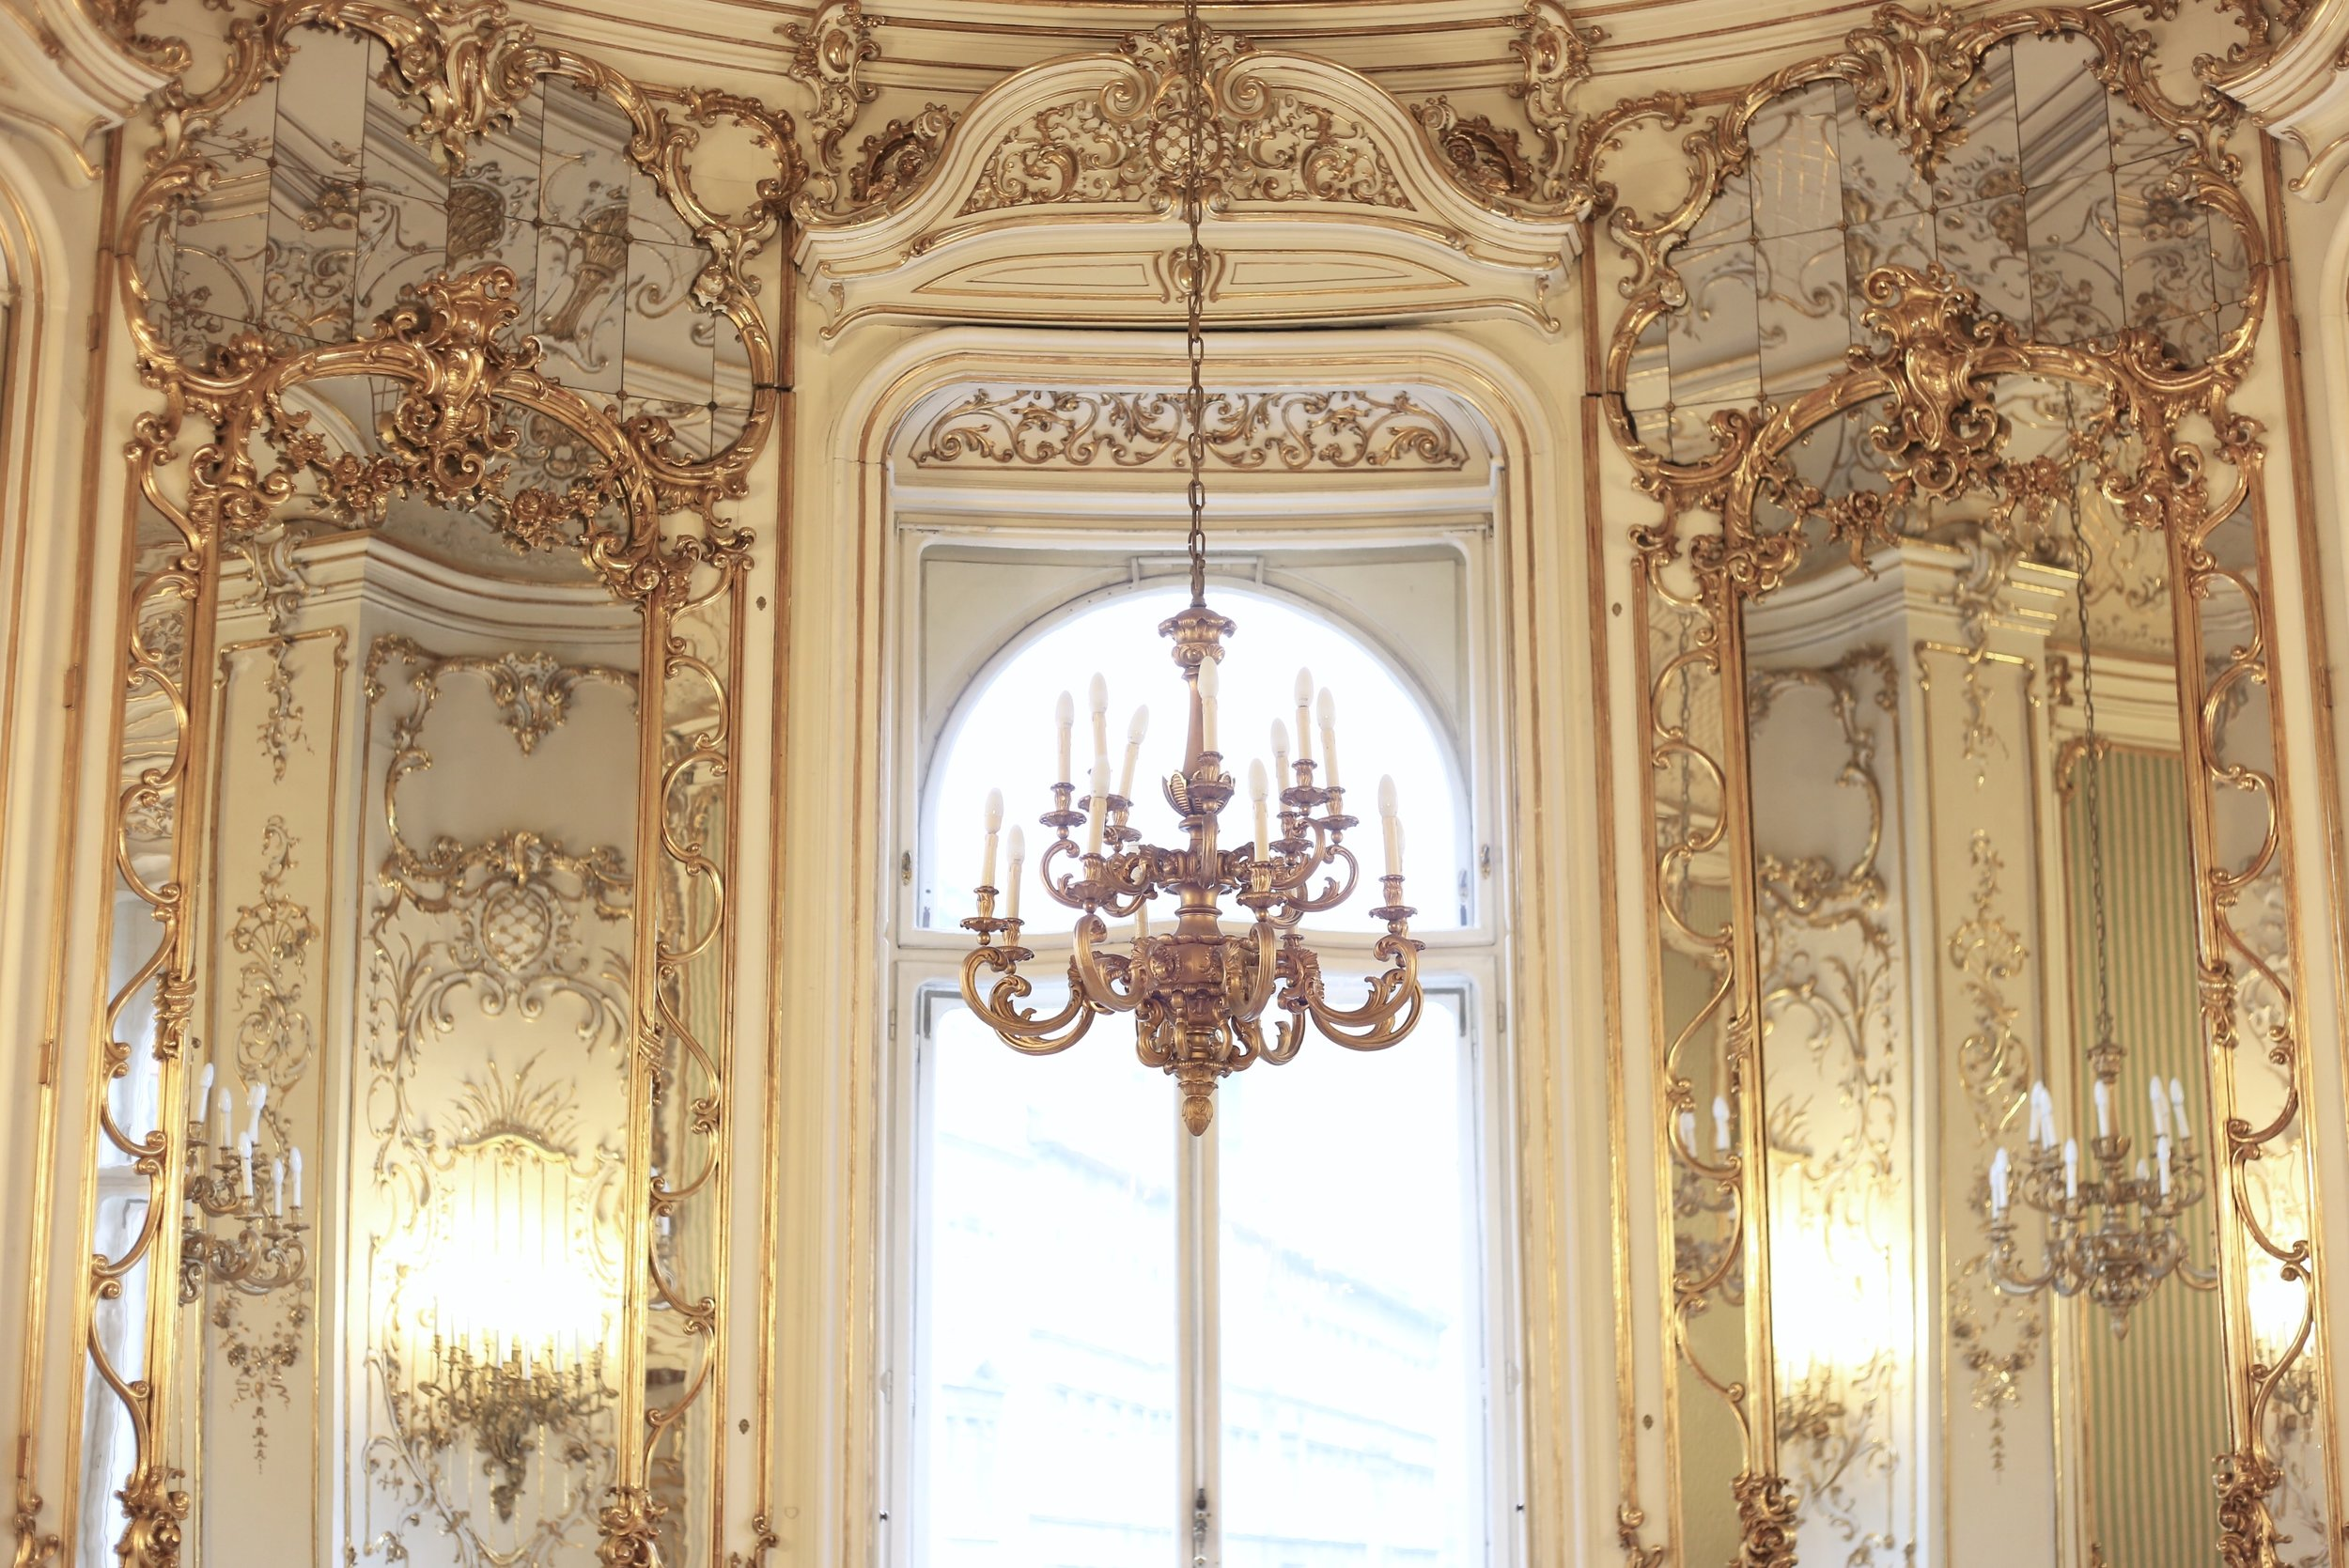 Chandelier and rococo details at the Szabo Ervin Library.